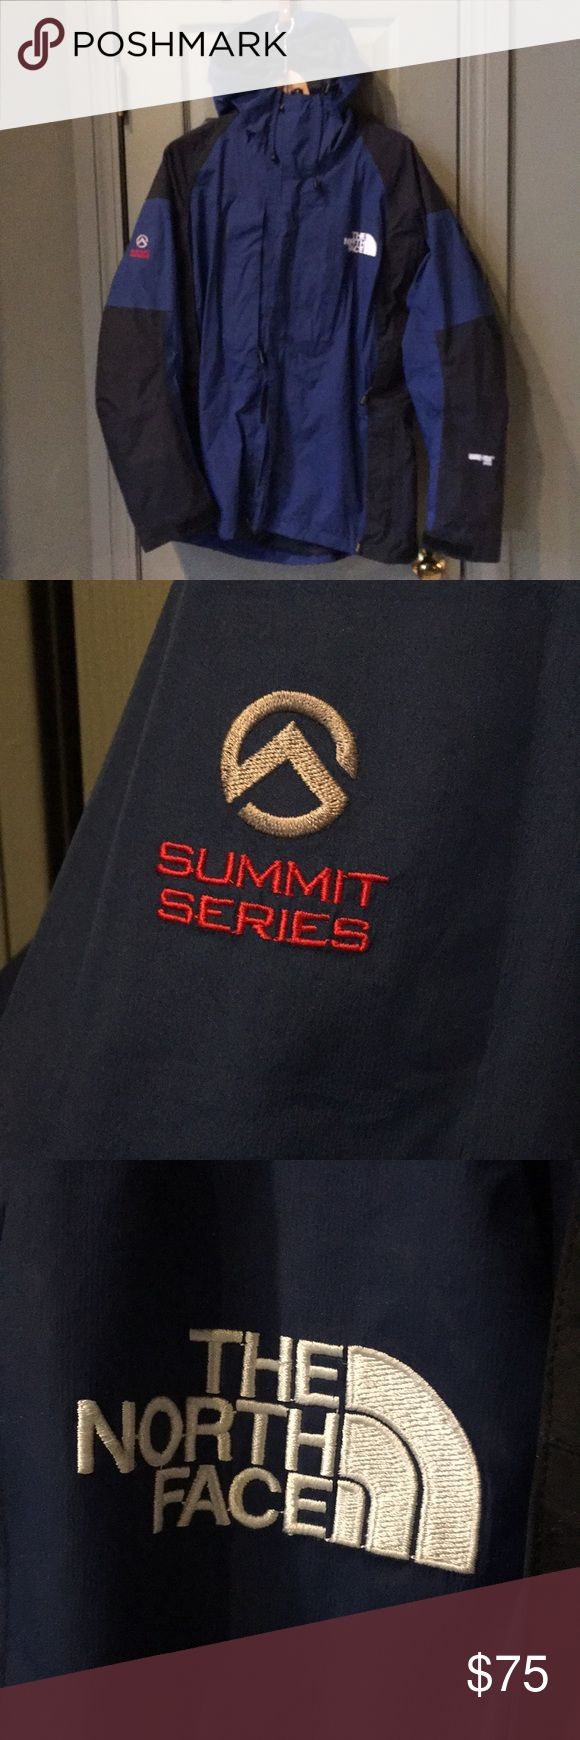 The North Face Summit Series Ski Jacket Shell Gently used ski shell jacket that is designed to allow you to zip a Denali North Face fleece inside this GoreTex shell. Pit zips, waist band, easy access lift pass pockets, and waterproof GoreTex shell, the functionality of this Jacket is timeless. North Face Jackets & Coats Ski & Snowboard